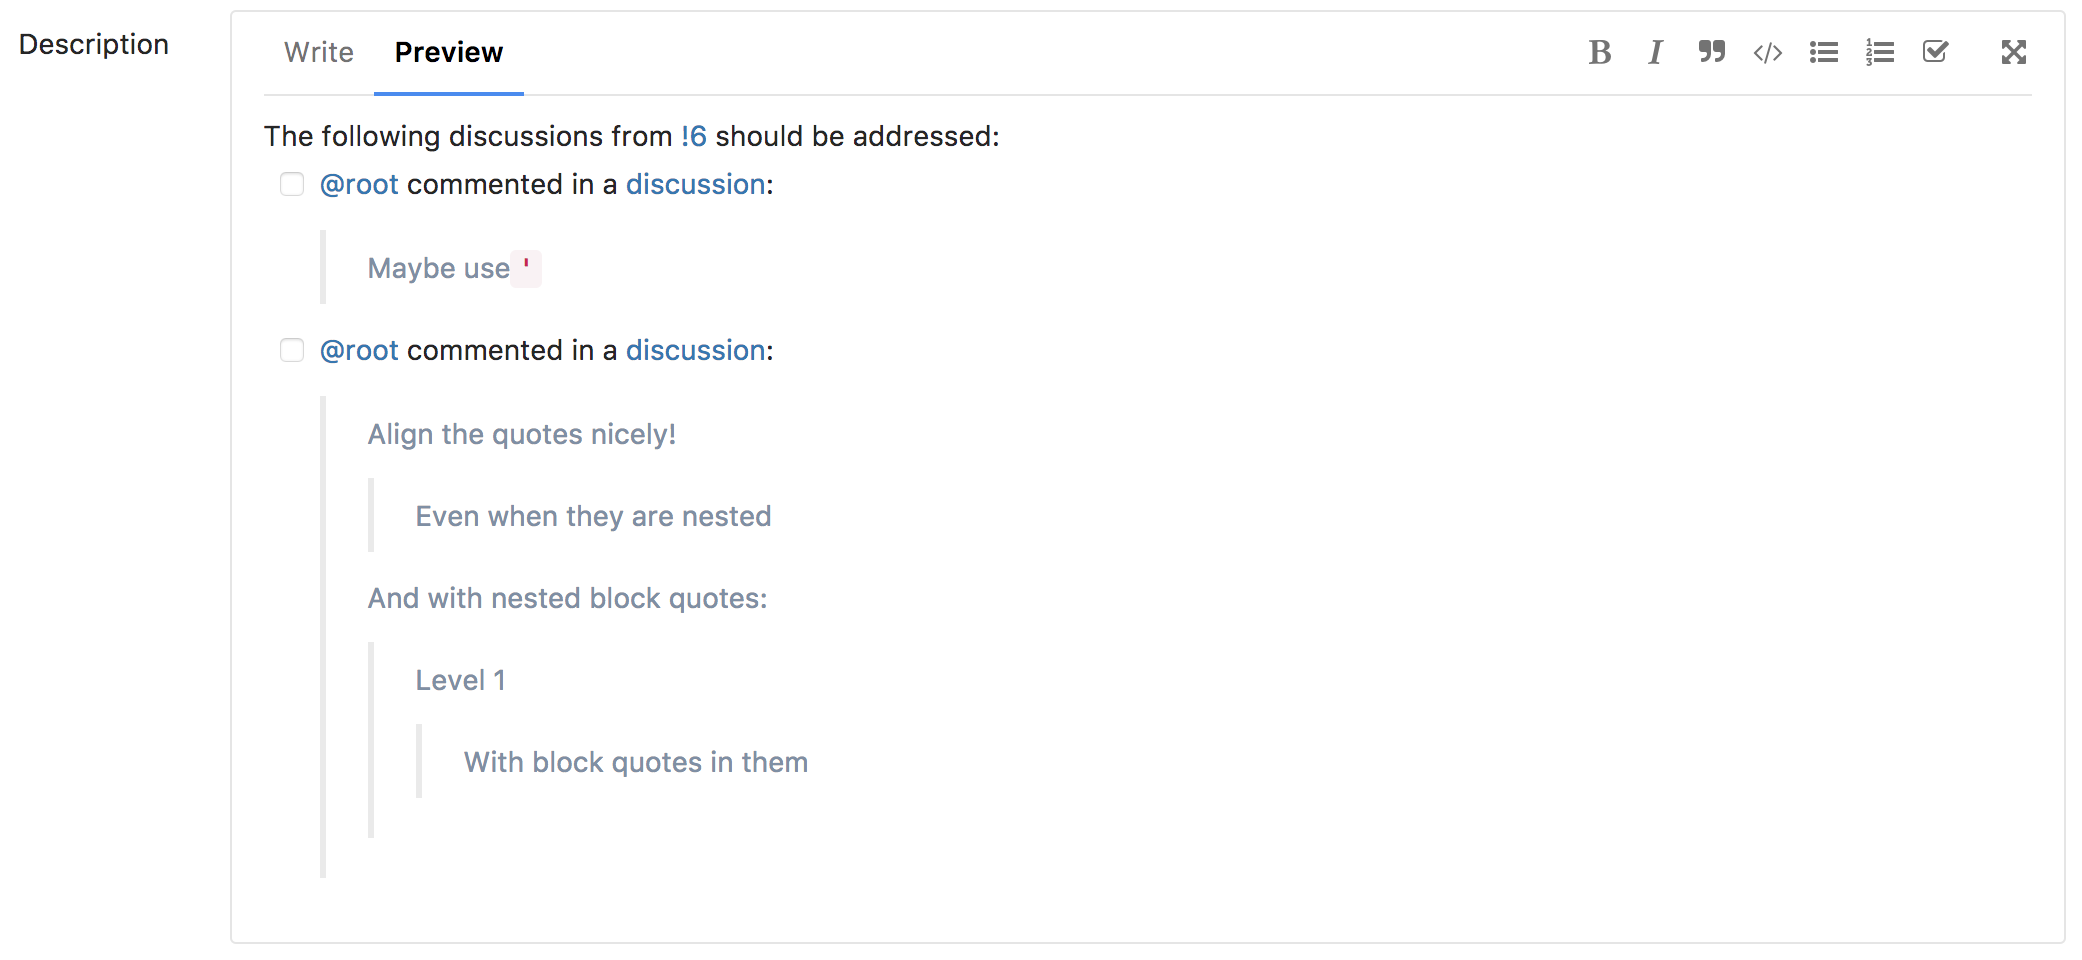 doc/user/project/merge_requests/img/preview_issue_for_discussions.png